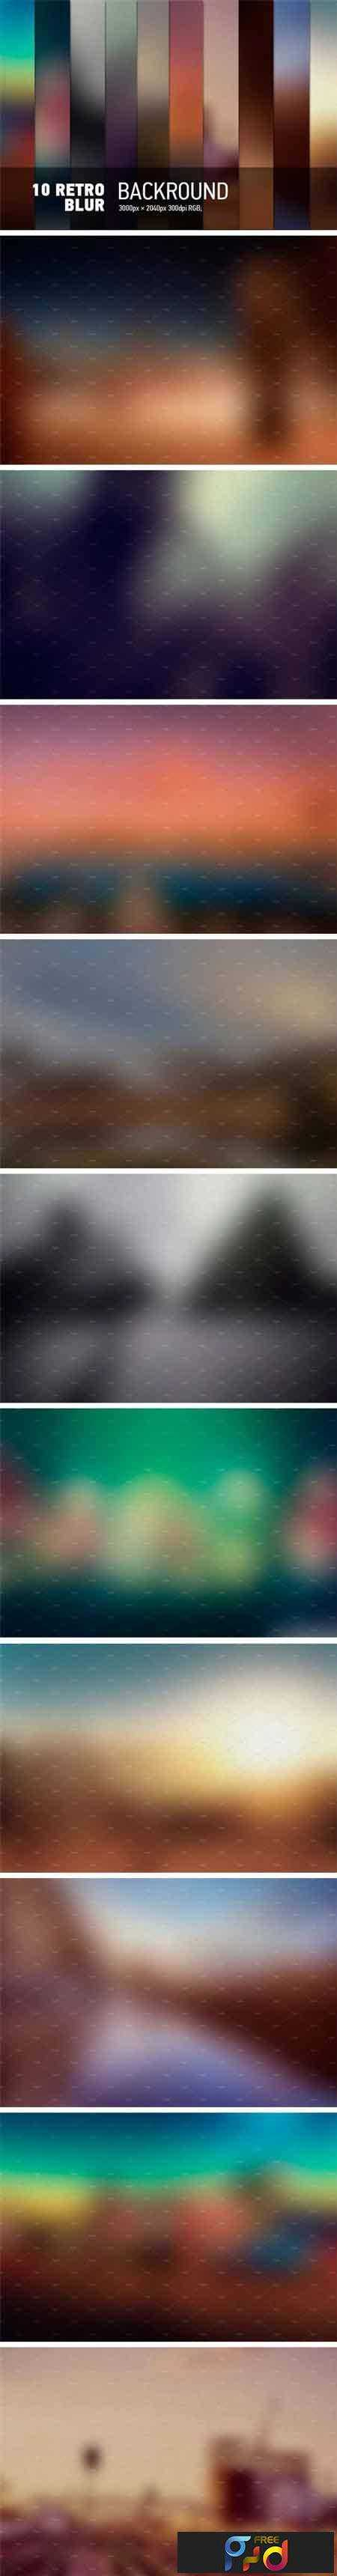 1707178 Retro Blurred Backgrounds 1972692 1